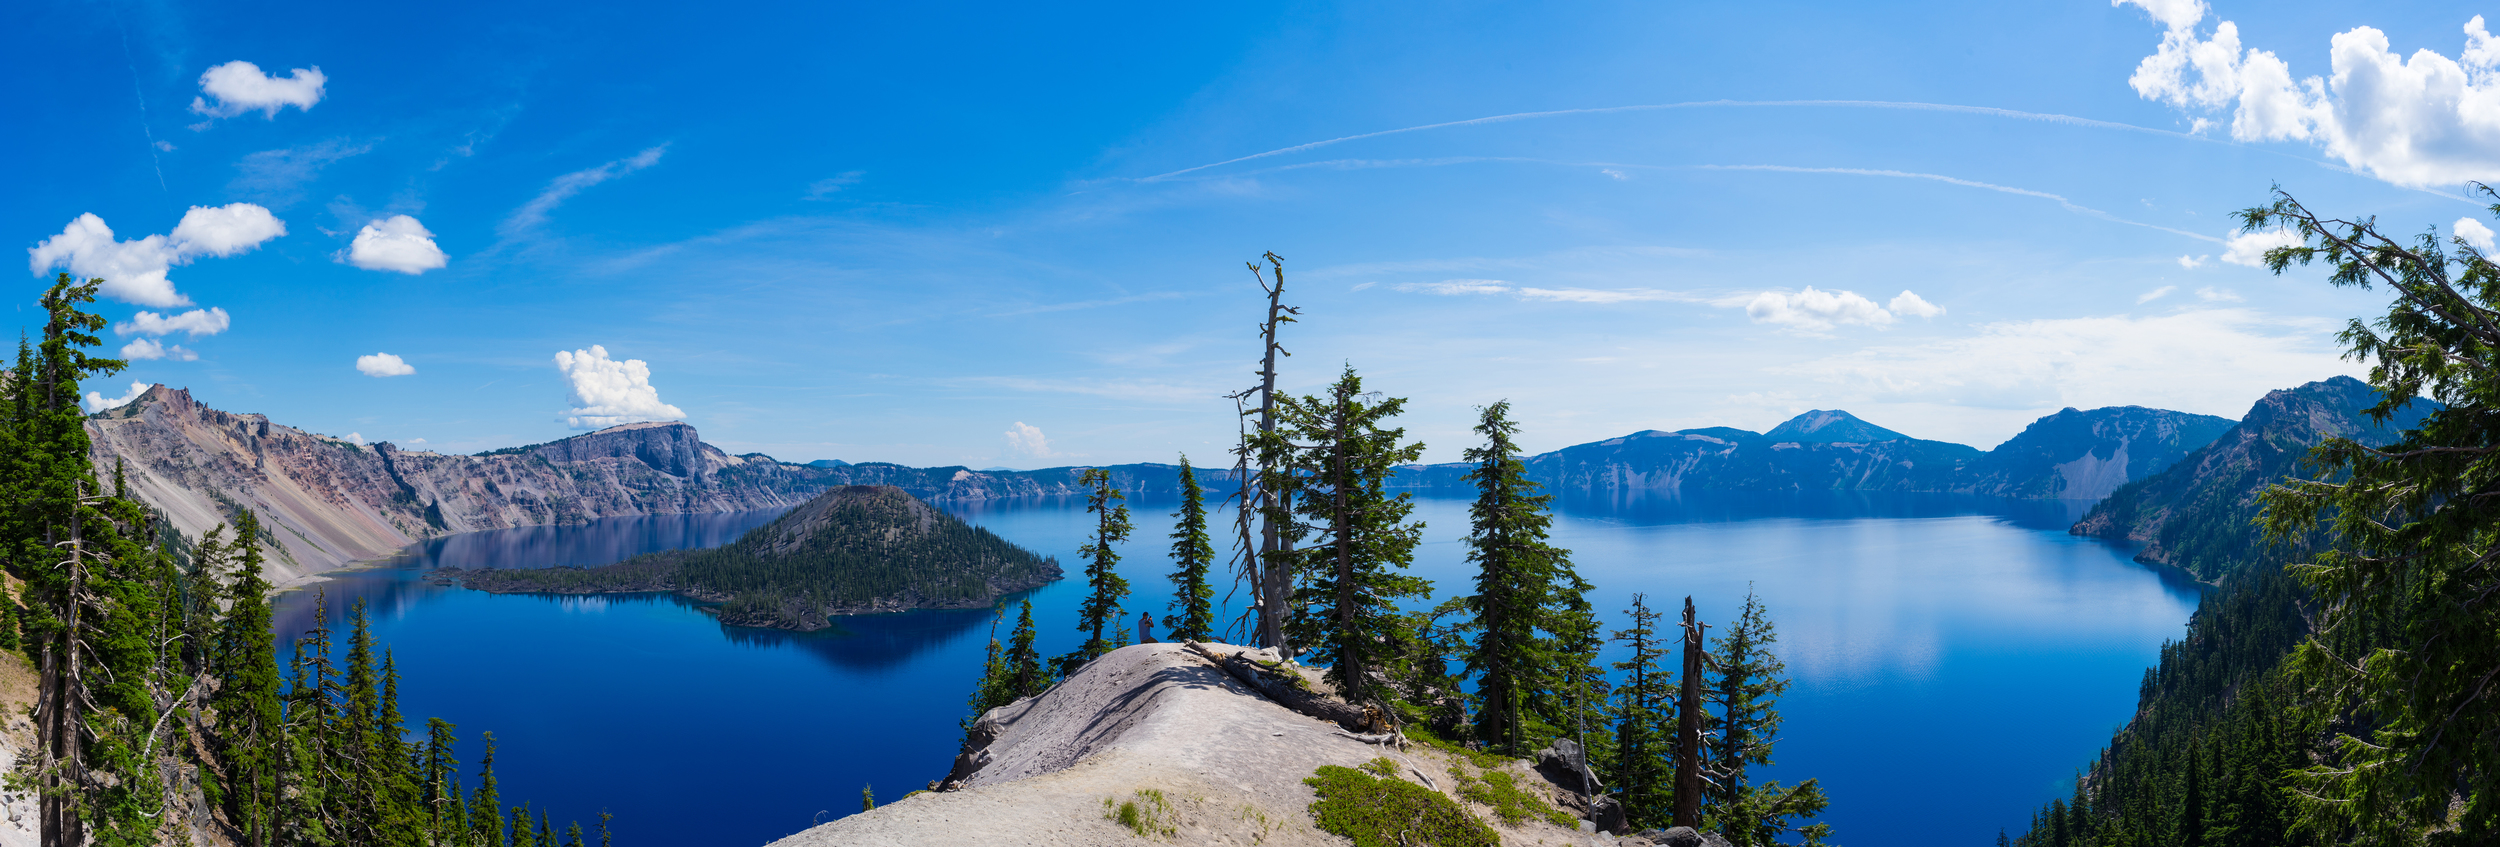 Crater Lake  is so vast that I cannot capture it in a single image because none of my lens were wide enough. The island to the left is called  Wizard Island  which rises 750 feet above the surface the lake and actually has its own volcanic crater named the  Witches Cauldron  (Wikipedia).